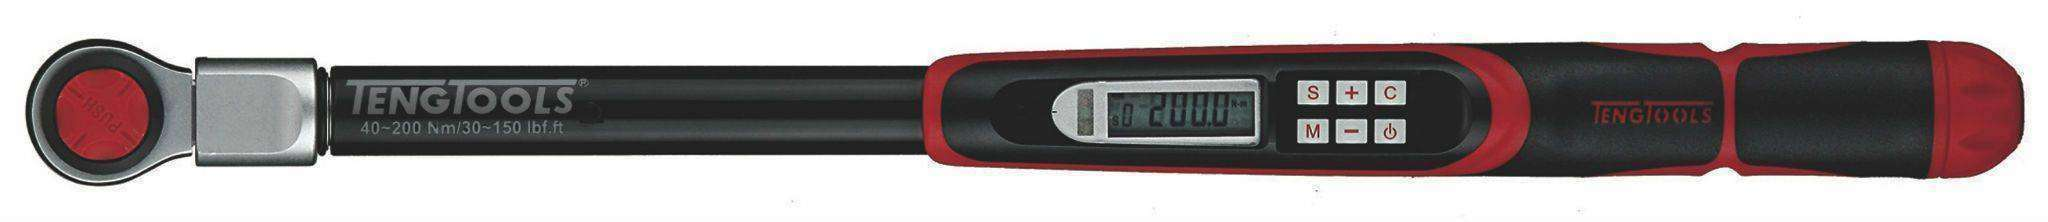 DIGITAL TORQUE WRENCH  1/2'' 200NM - Teng Tools USA